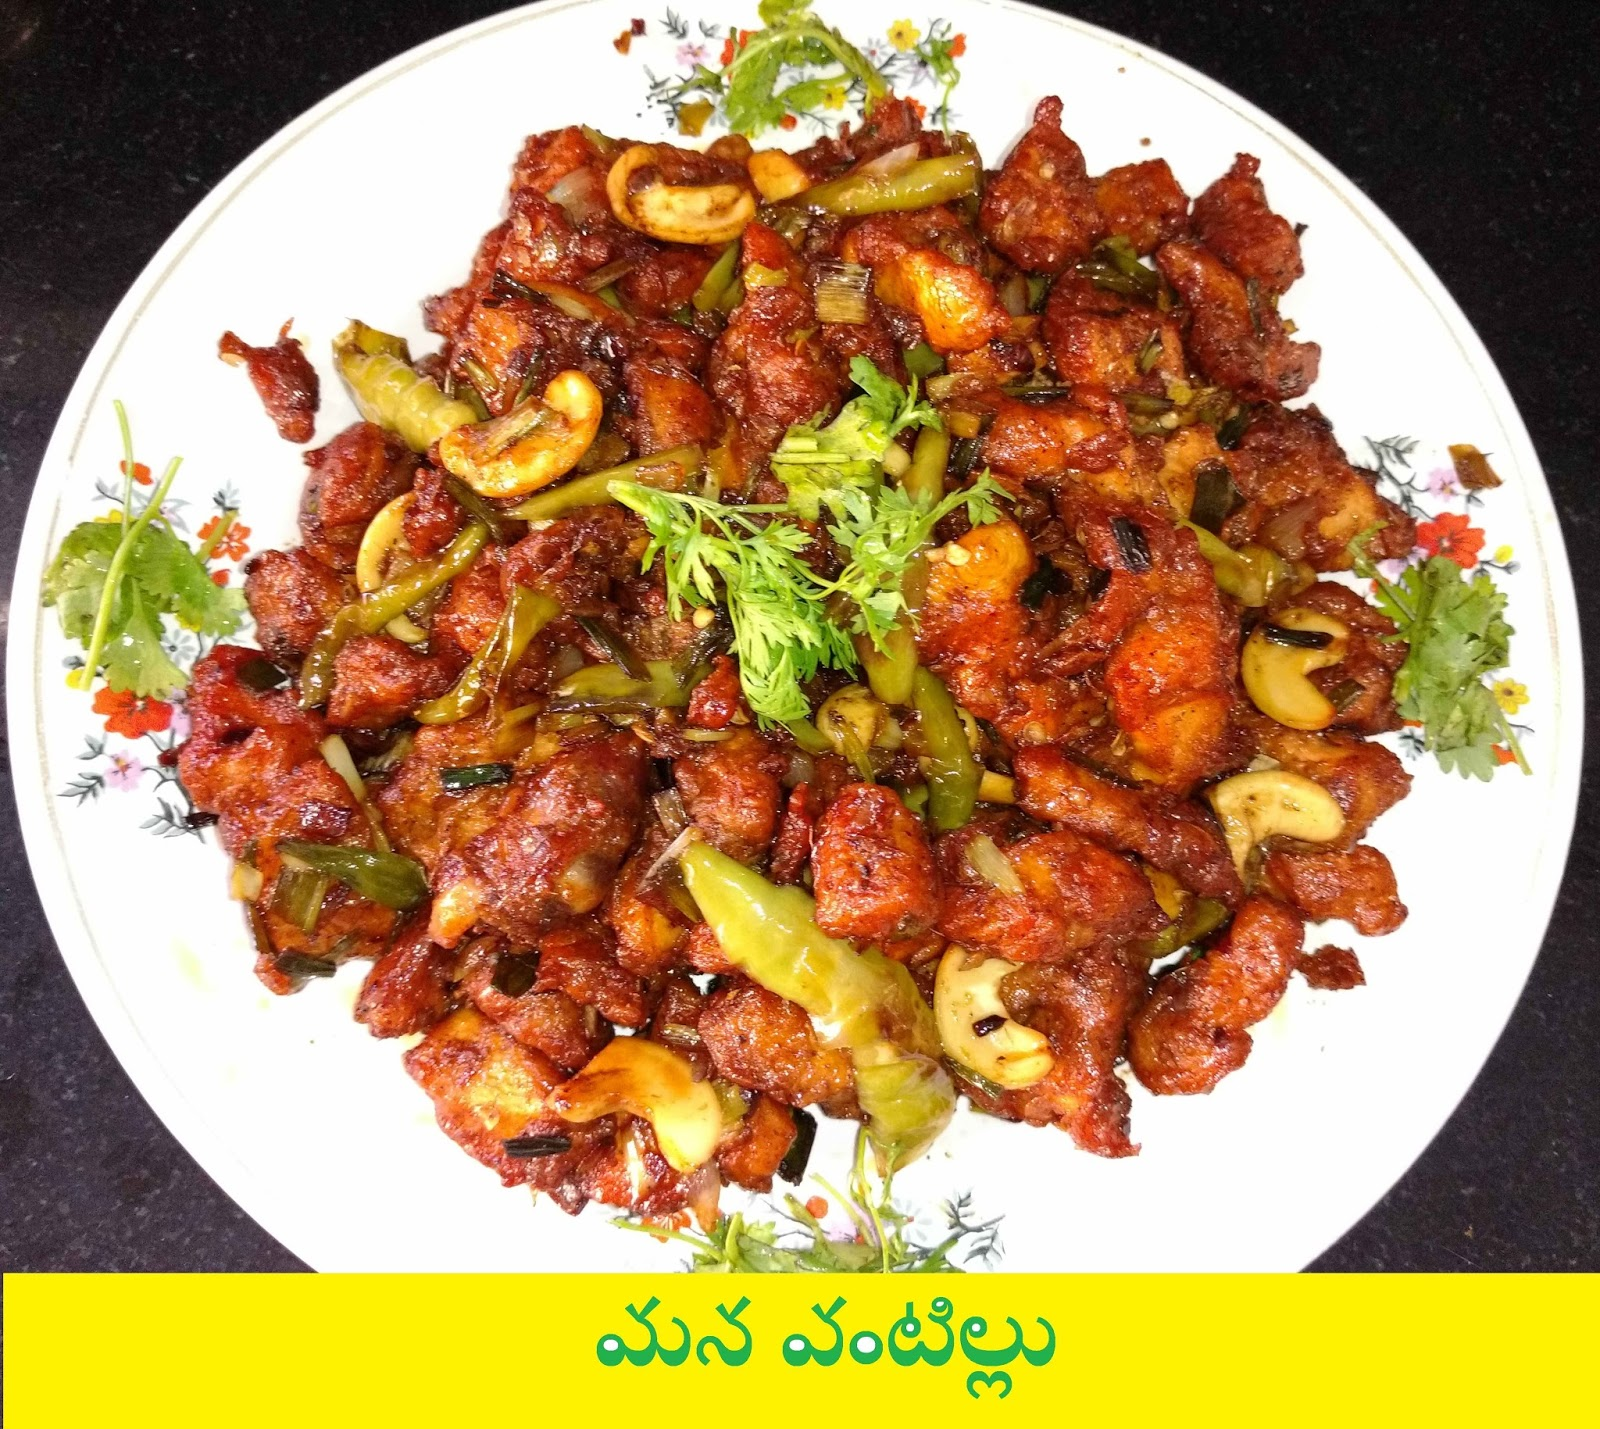 Chicken manchurian dry recipe in telugu cook it for more 2 minutes on low flame 27 after 2 minutes turn of stove and take manchuria into a serving bowl garnish with coriander and lemon forumfinder Choice Image